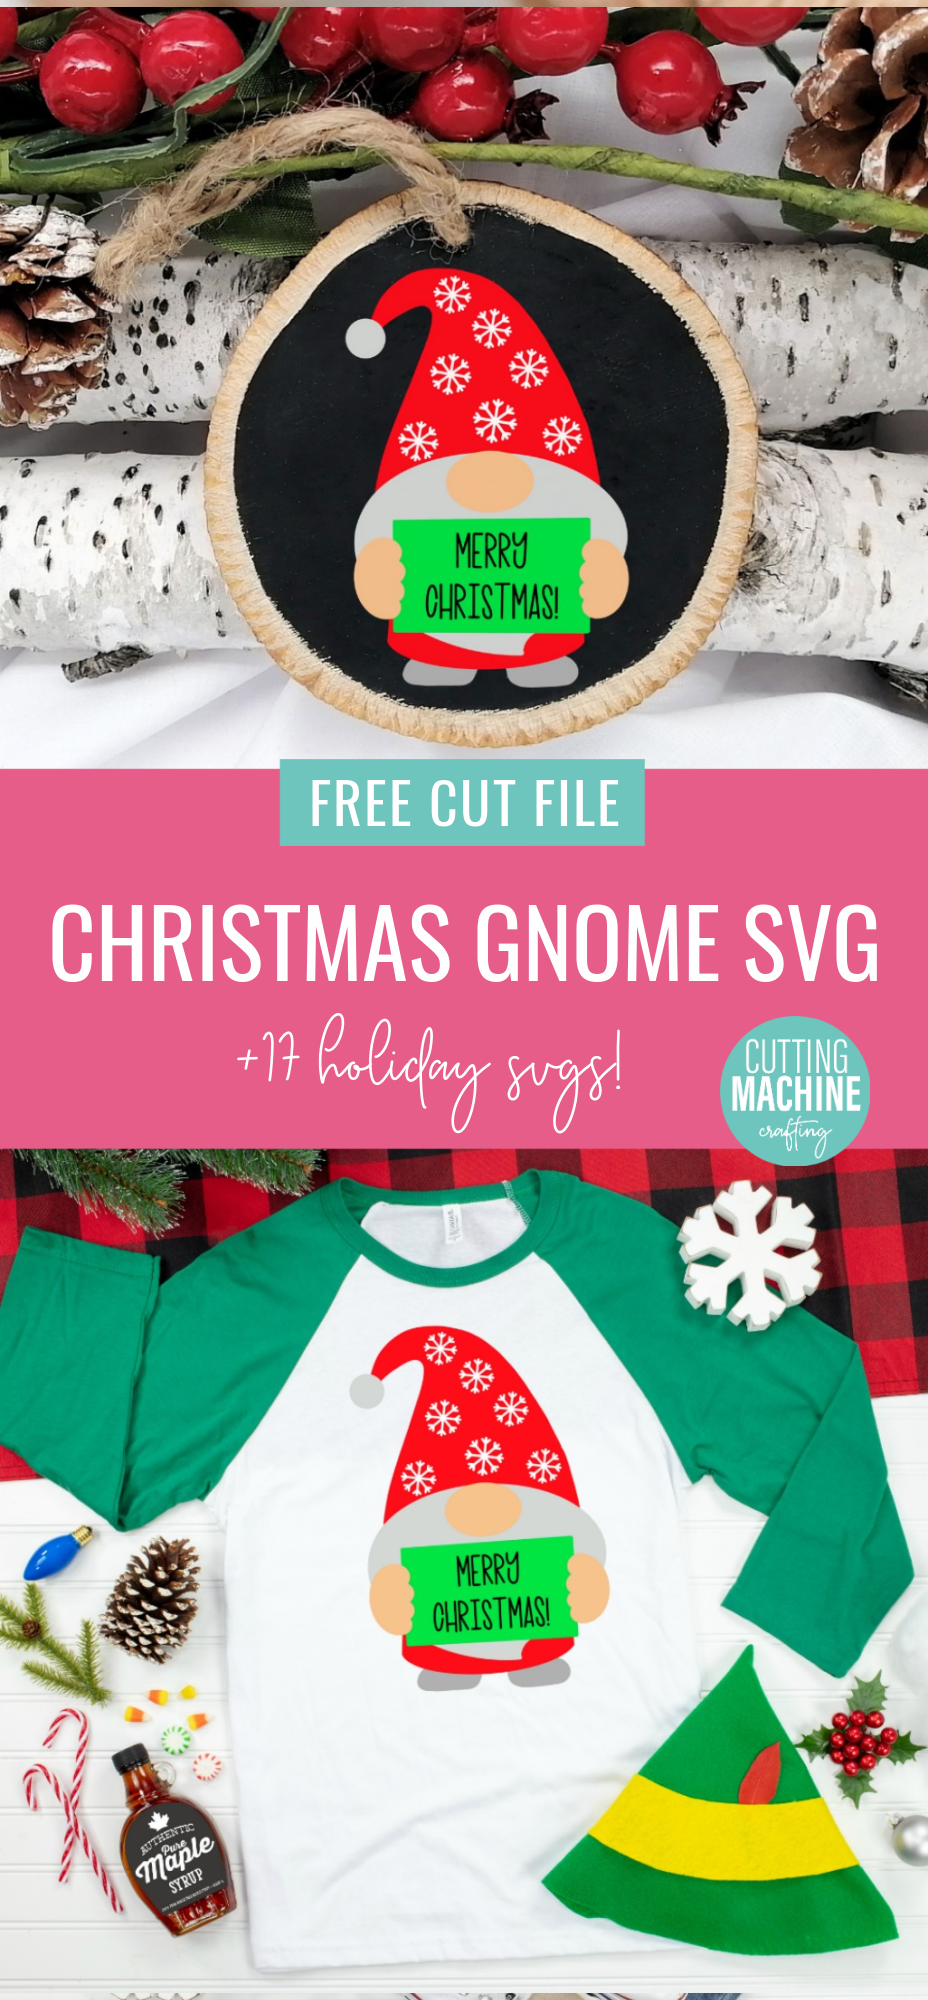 Download a free Christmas Gnome SVG File along with 17 free Christmas Ornament Cut Files! Use for Christmas crafting with your Cricut Maker, Cricut Explore Air, Cricut Joy or Silhouette Cameo to make handmade gifts for Christmas or DIY Ornaments to trim your Christmas tree! #ChristmasCrafting #ChristmasOrnaments #DIYOrnaments #DIYChristmas #ChristmasGnome #Gnome #SVGFiles #CutFilles #FreeSVG #CricutChristmas #CricutMade #CricutCreated